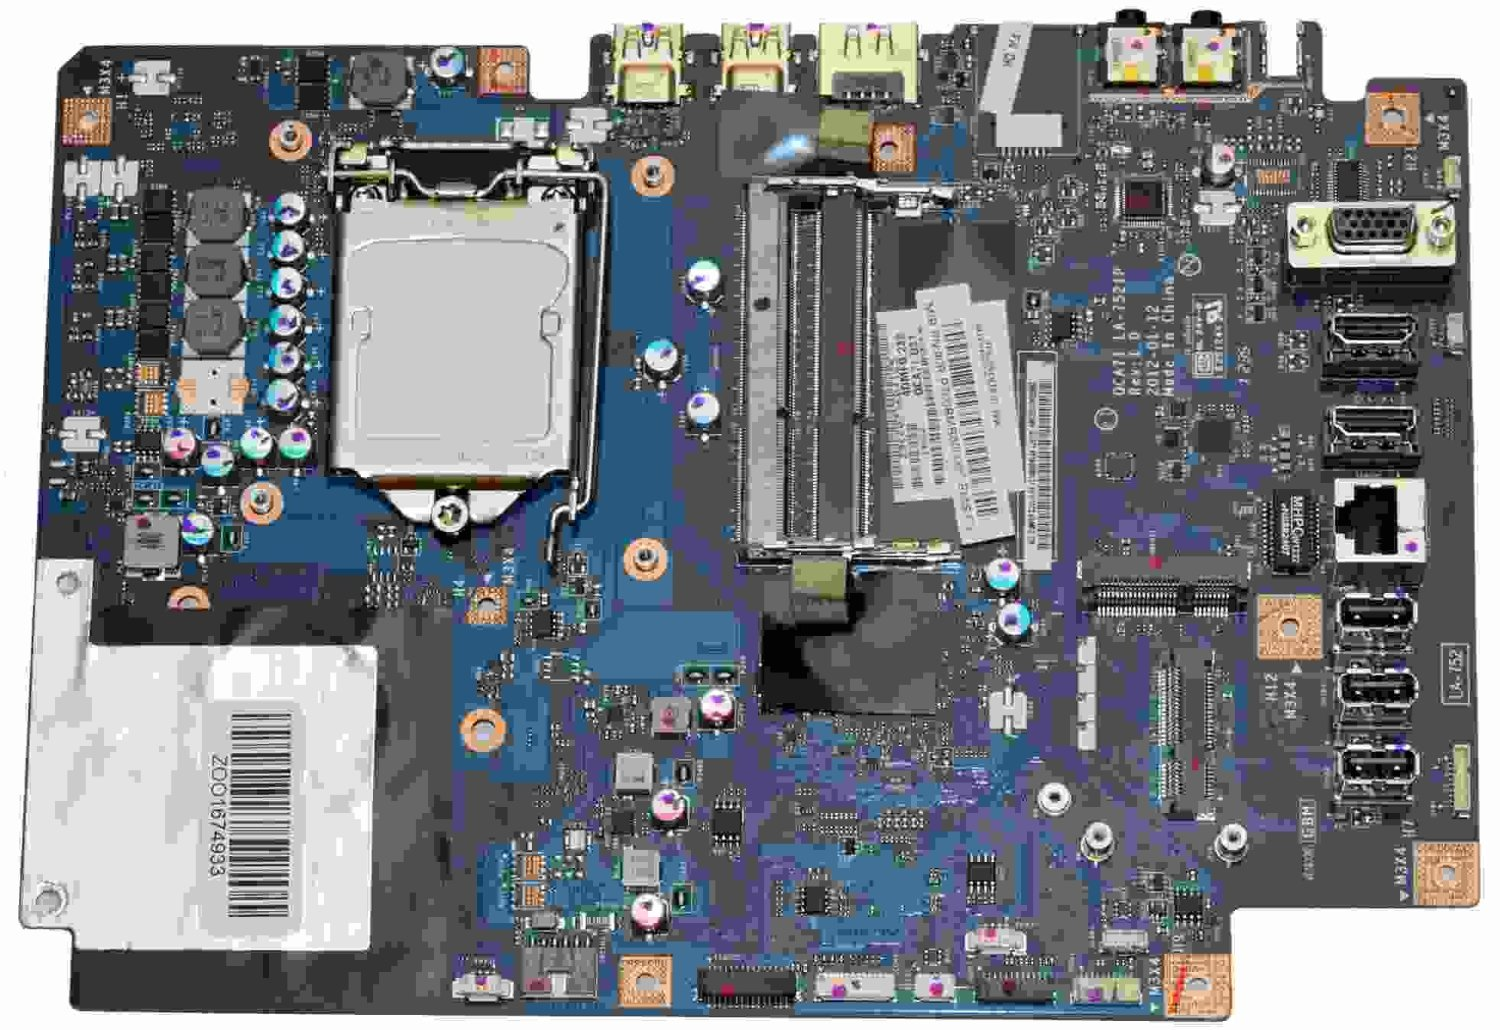 Cheap 1155 Asus Motherboard Find Deals On Mainboard Extreme H61 Soket Get Quotations 90r Pt00bmb80000c Et2411i Aio Intel S1155